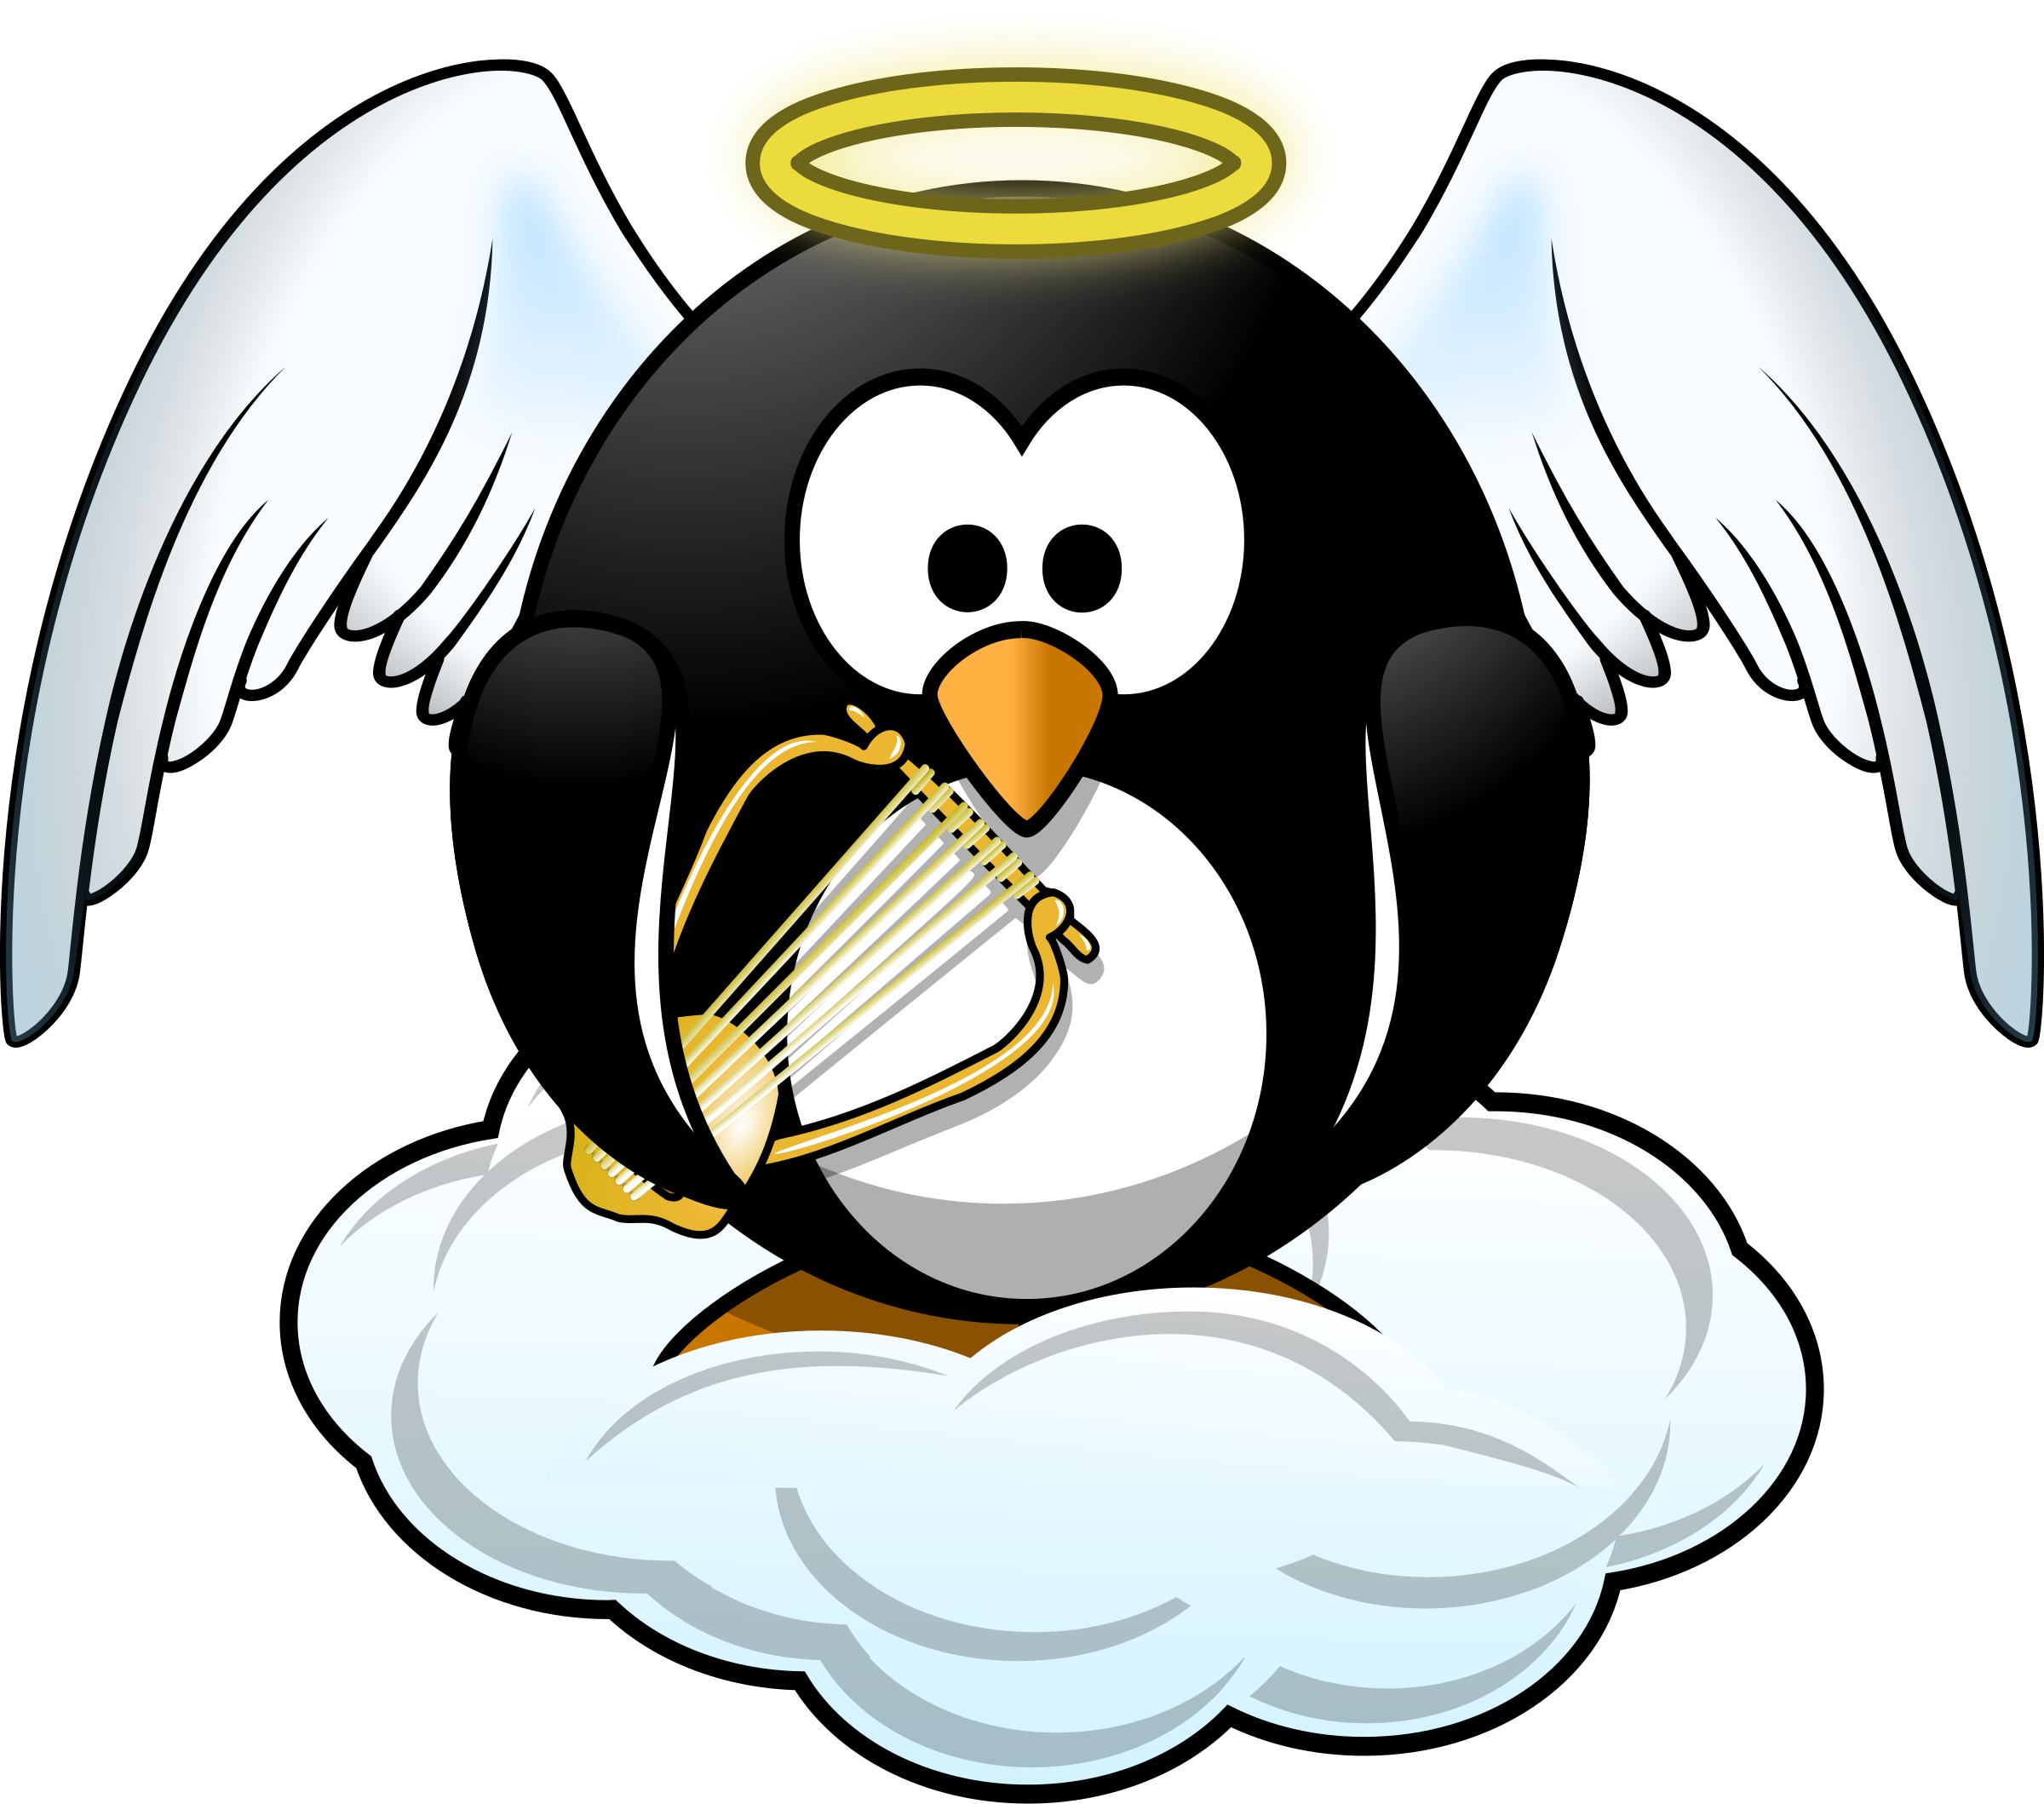 Halo clipart heavenly Free images clipart All About